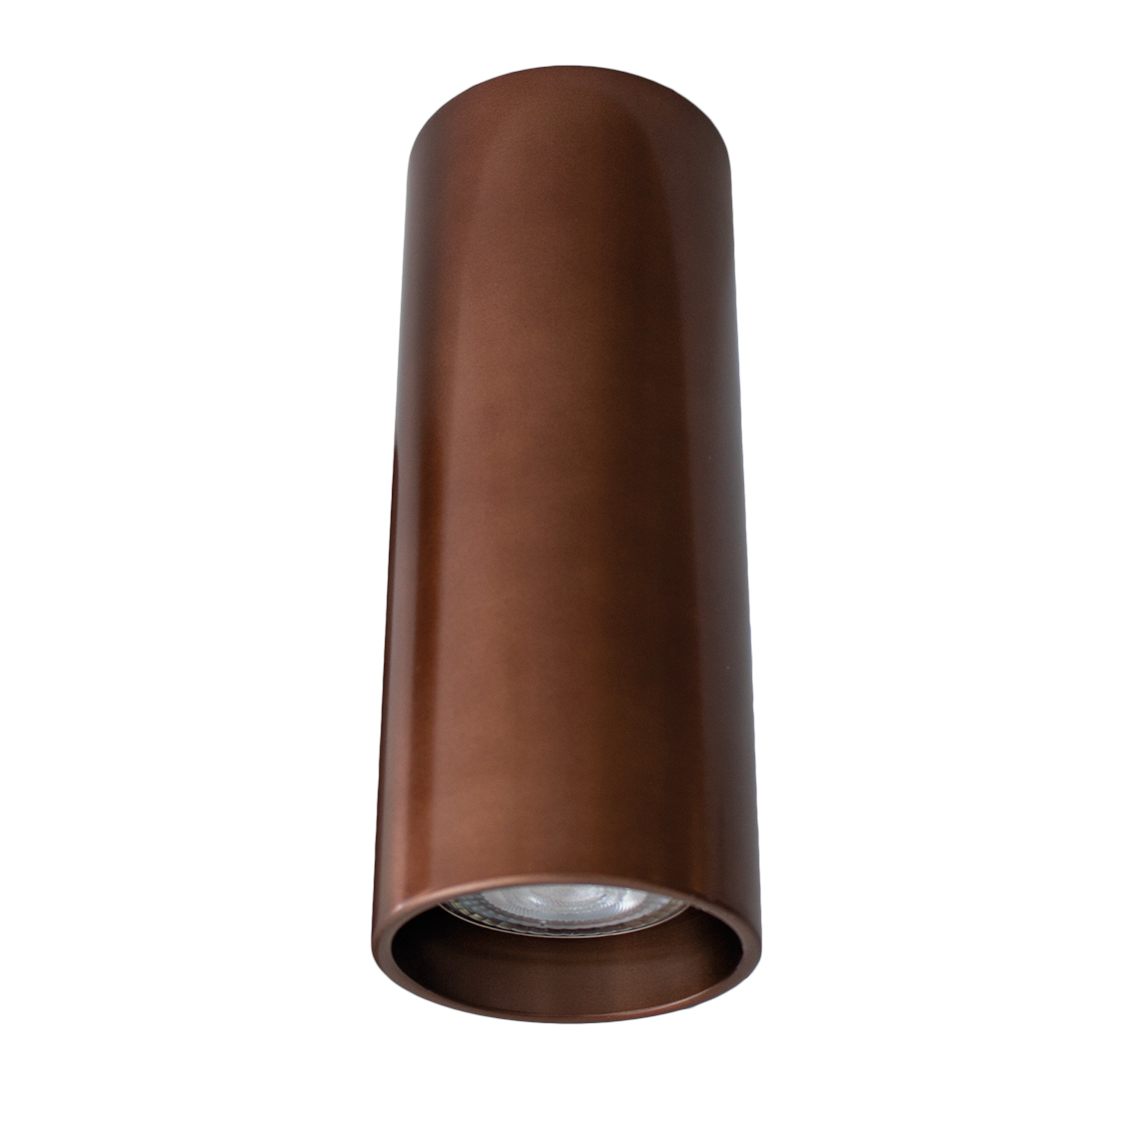 CPH Tubelight 18 Bronze